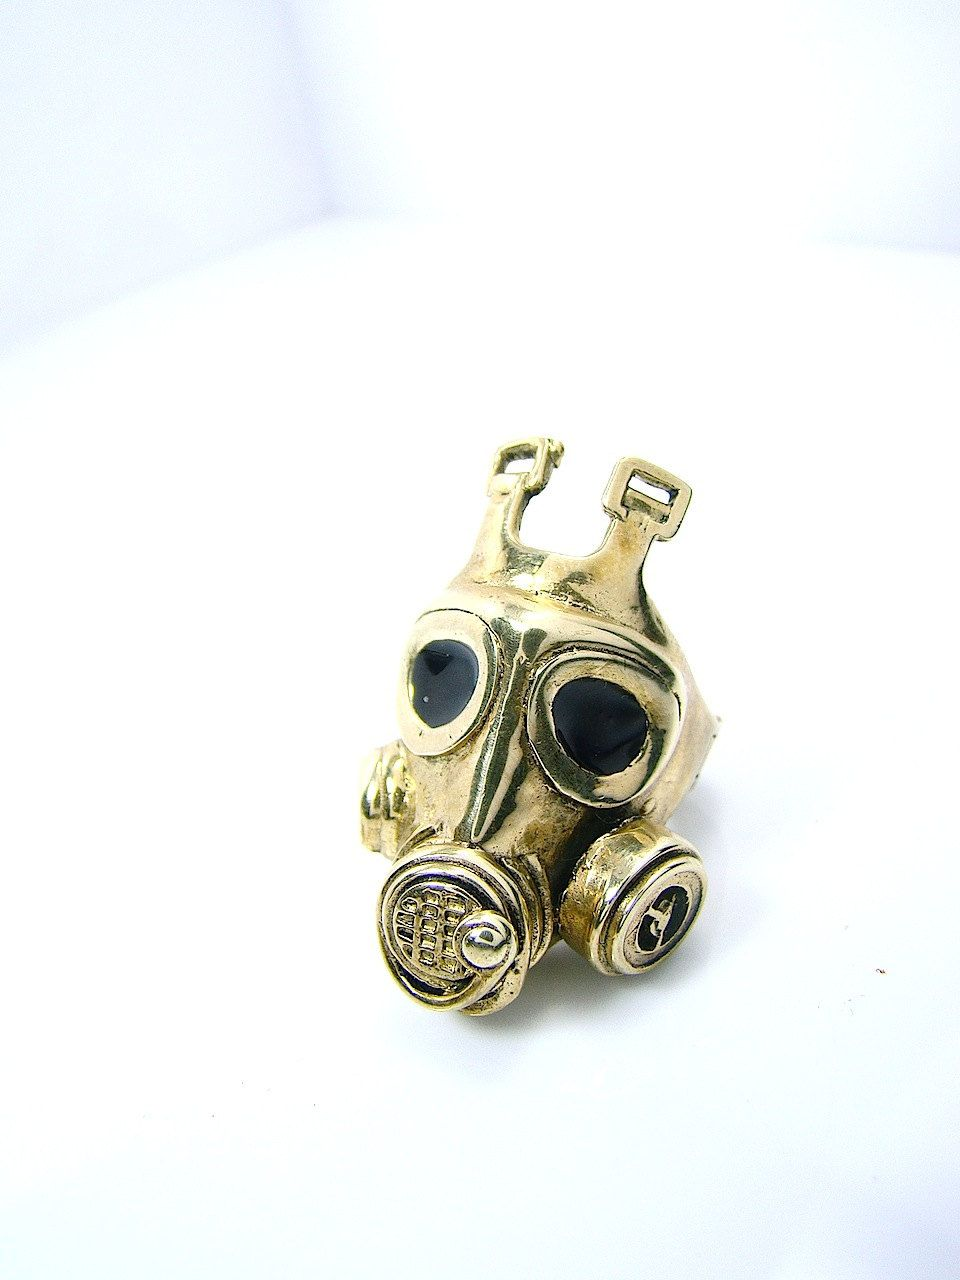 Gas Mask Ring In Brass with an oxidized antique gold color design by Mafia Studio